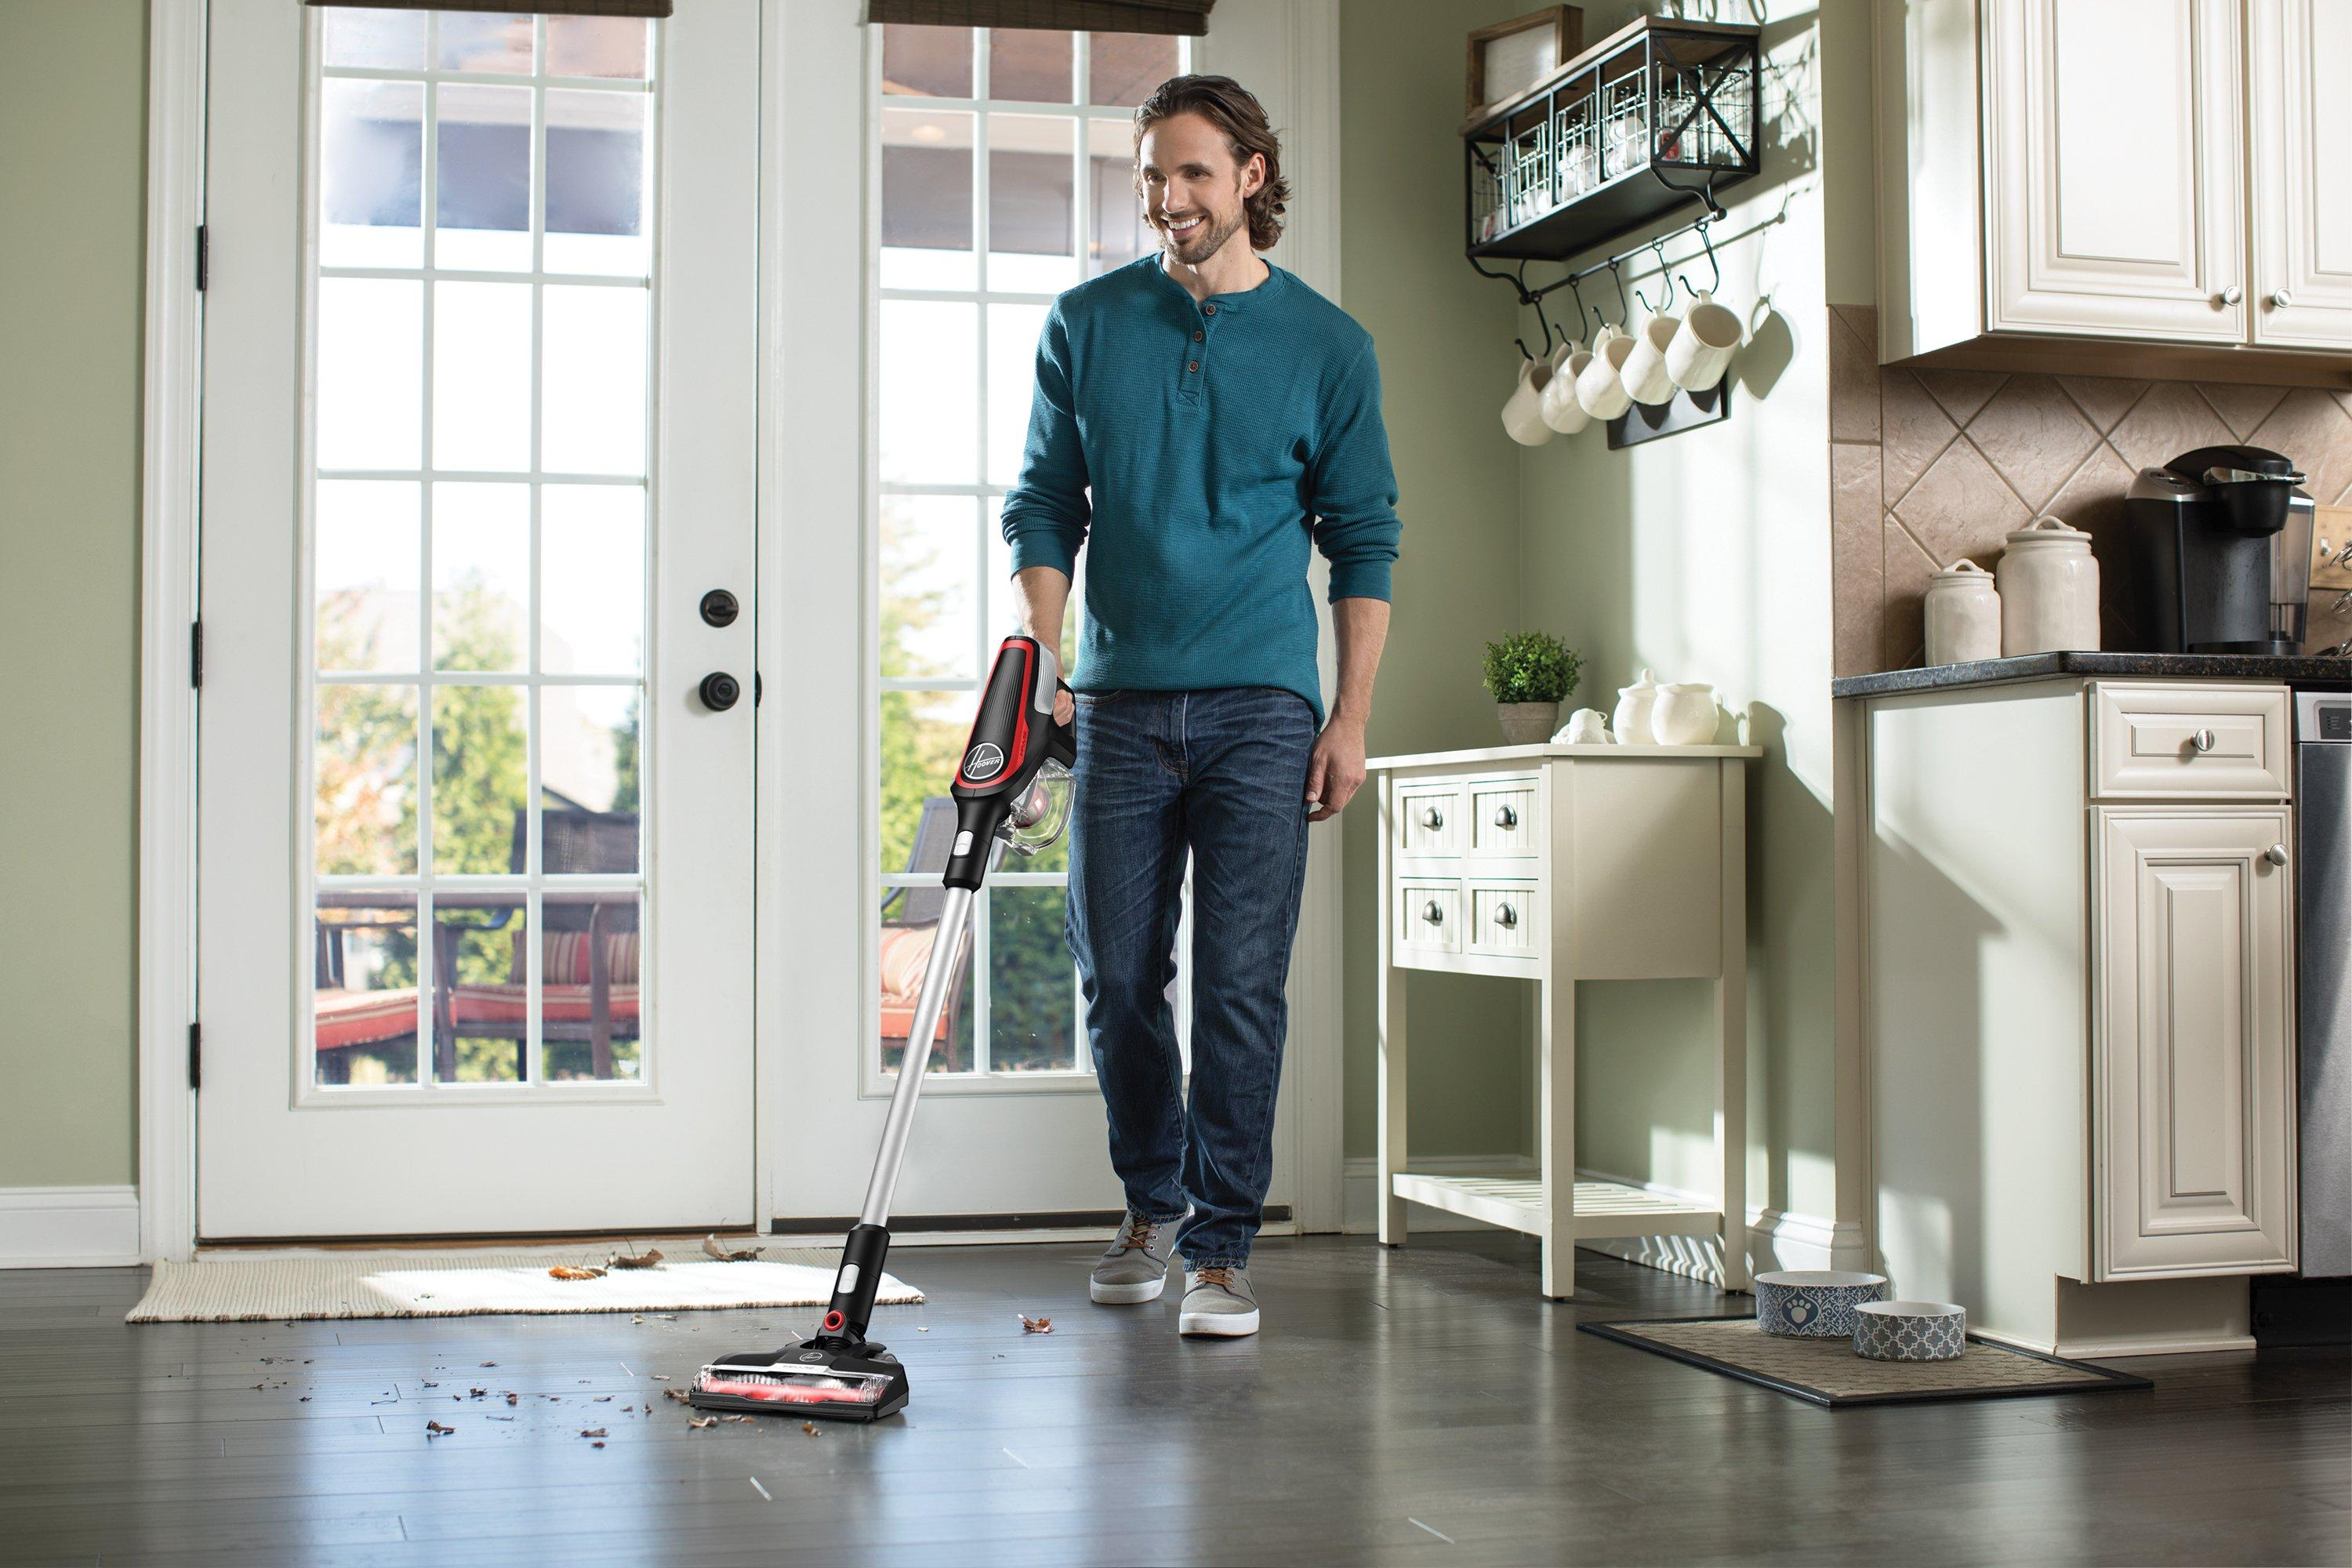 Expert Series Pet Impulse Cordless Stick Vacuum5